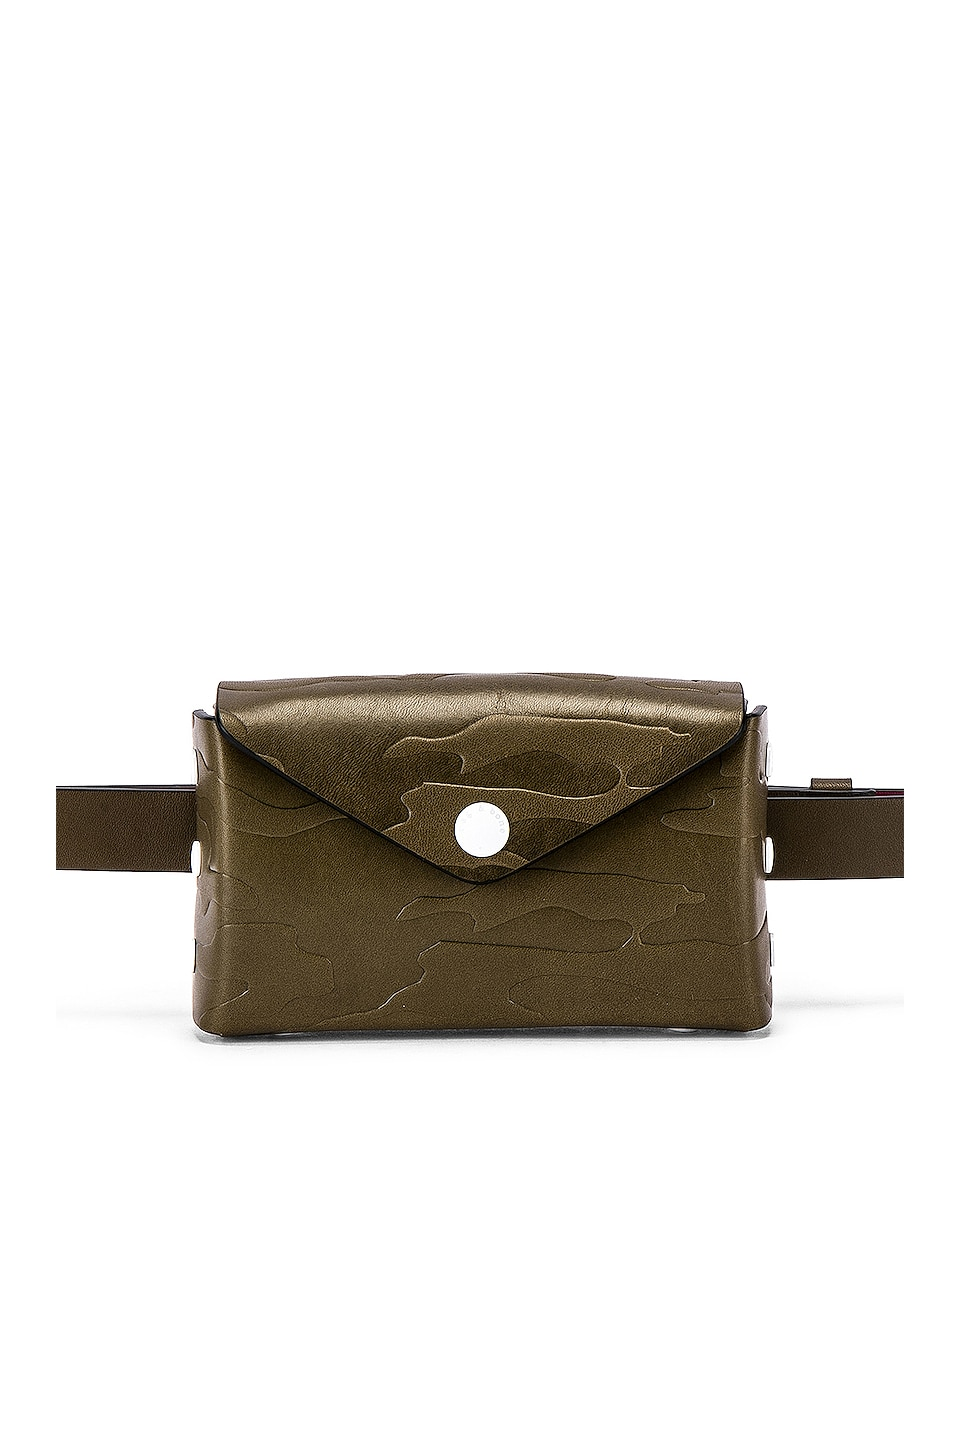 Rag & Bone Atlas Belt Bag in Olive